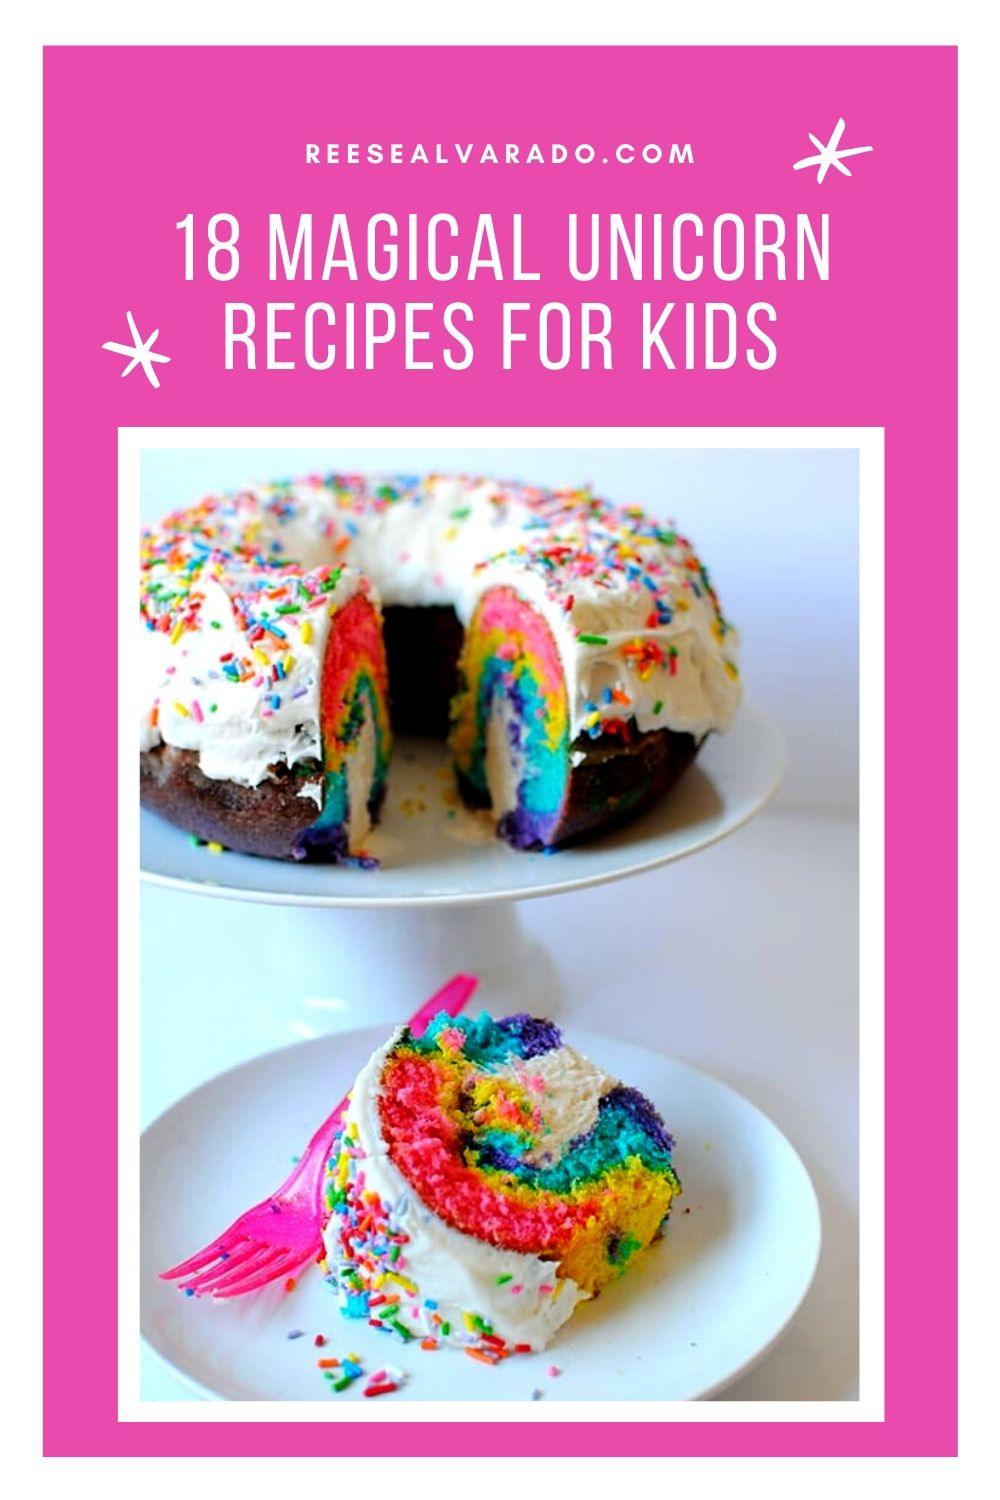 18 Magical Unicorn Recipes